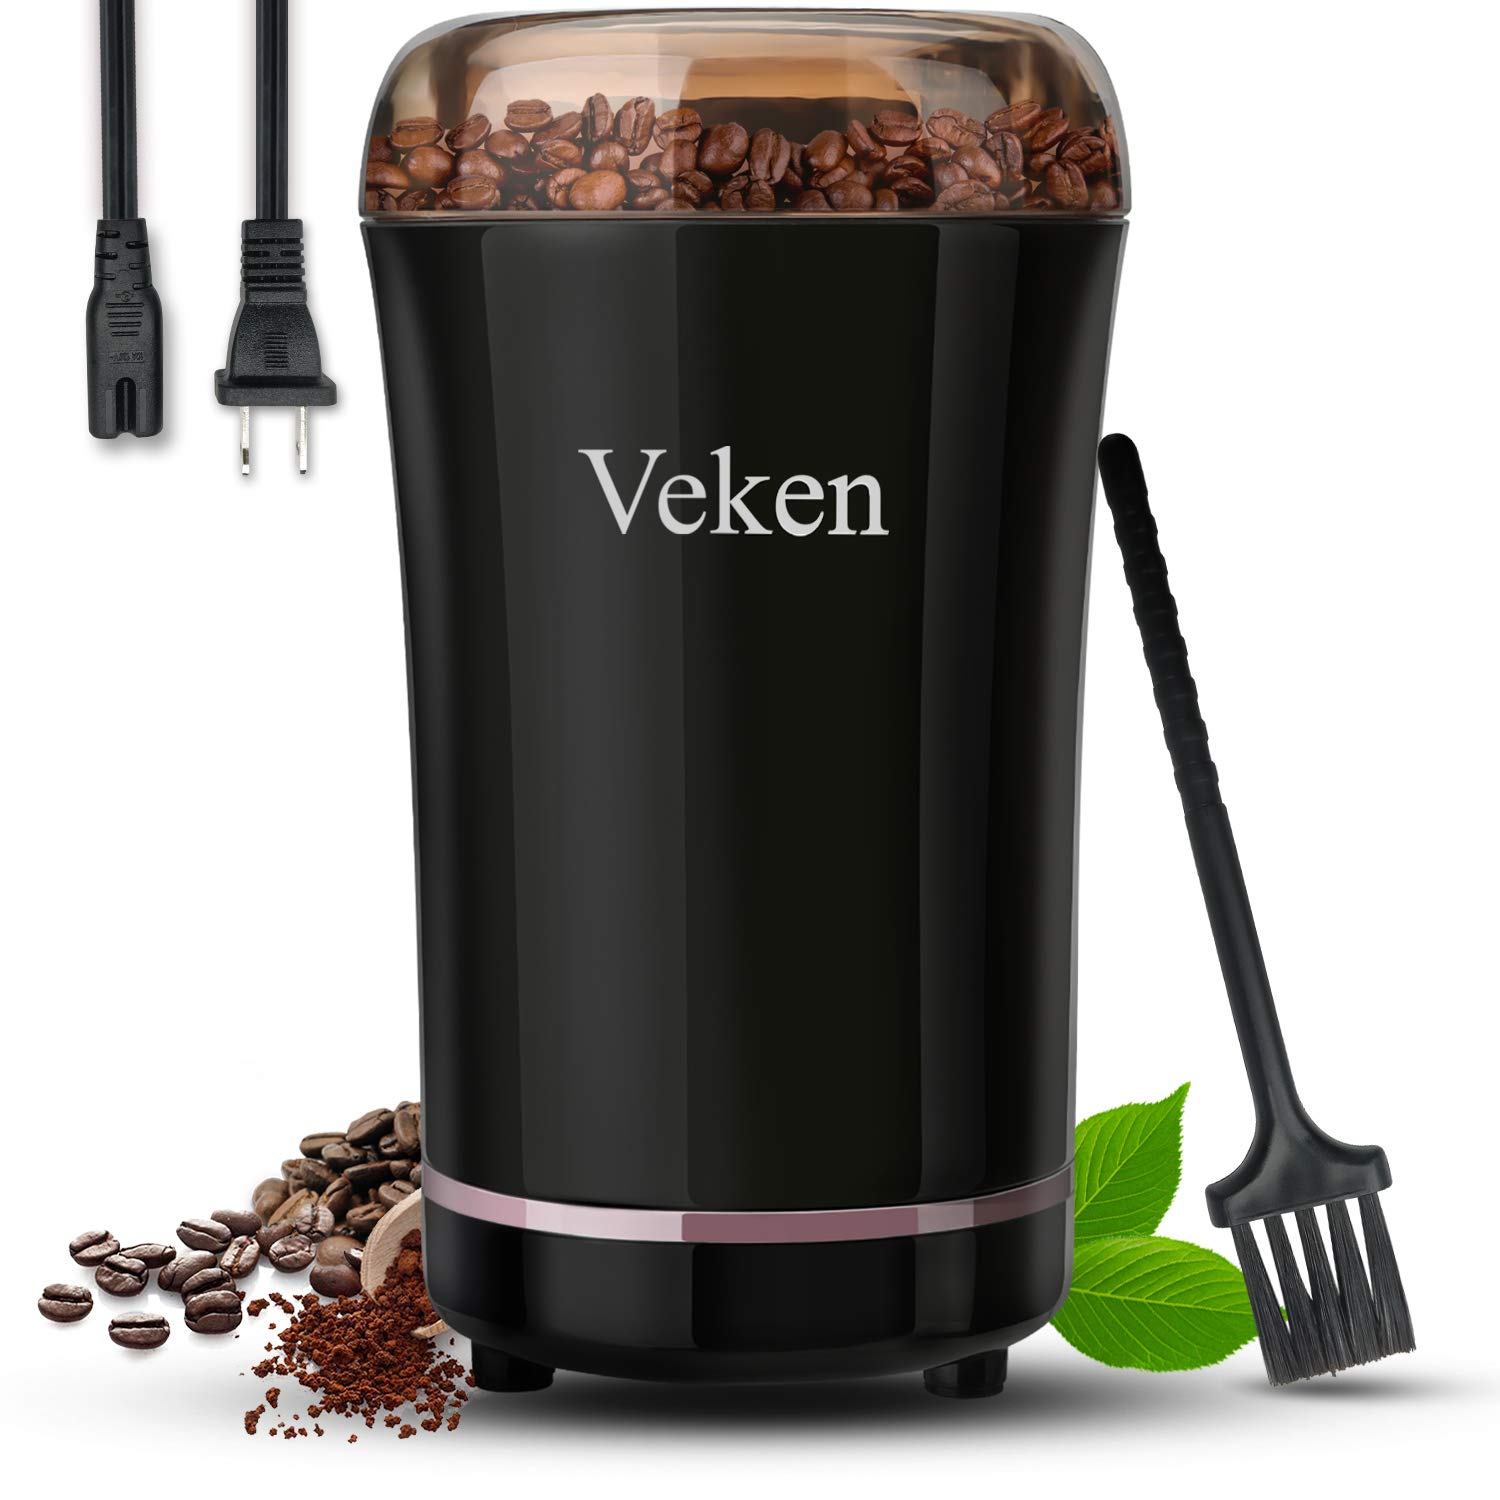 Veken Coffee Grinder Electric Spice & Nut Grinder with Stainless Steel Blade, Detachable Power Cord Coffee Bean Grinder for Coffee Grounds, Grains, 12 Cups (black)